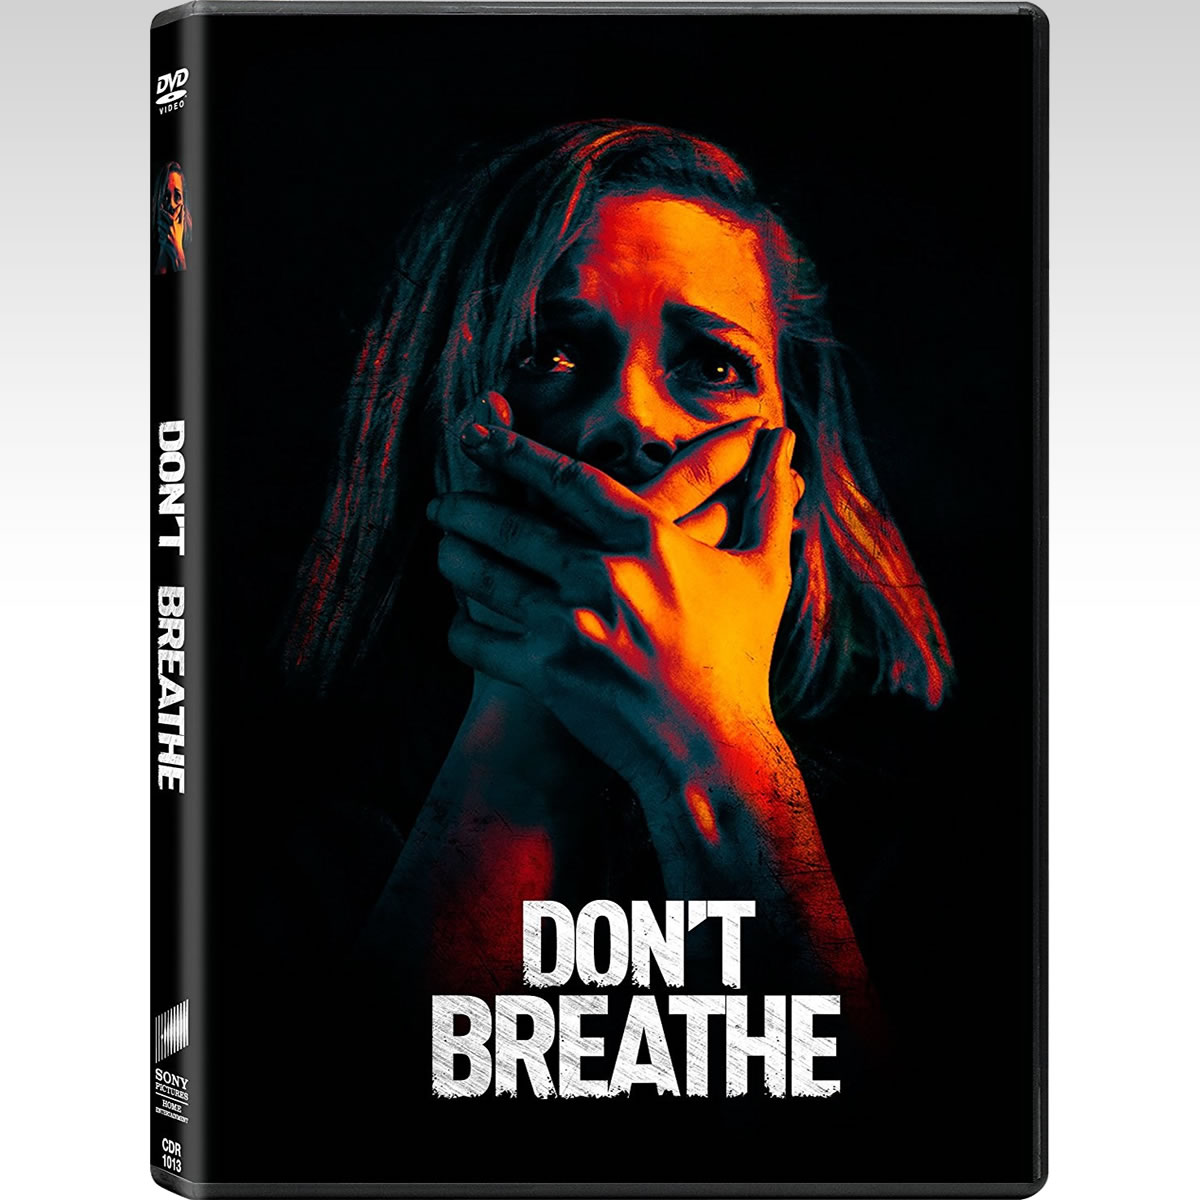 DON'T BREATHE (DVD)